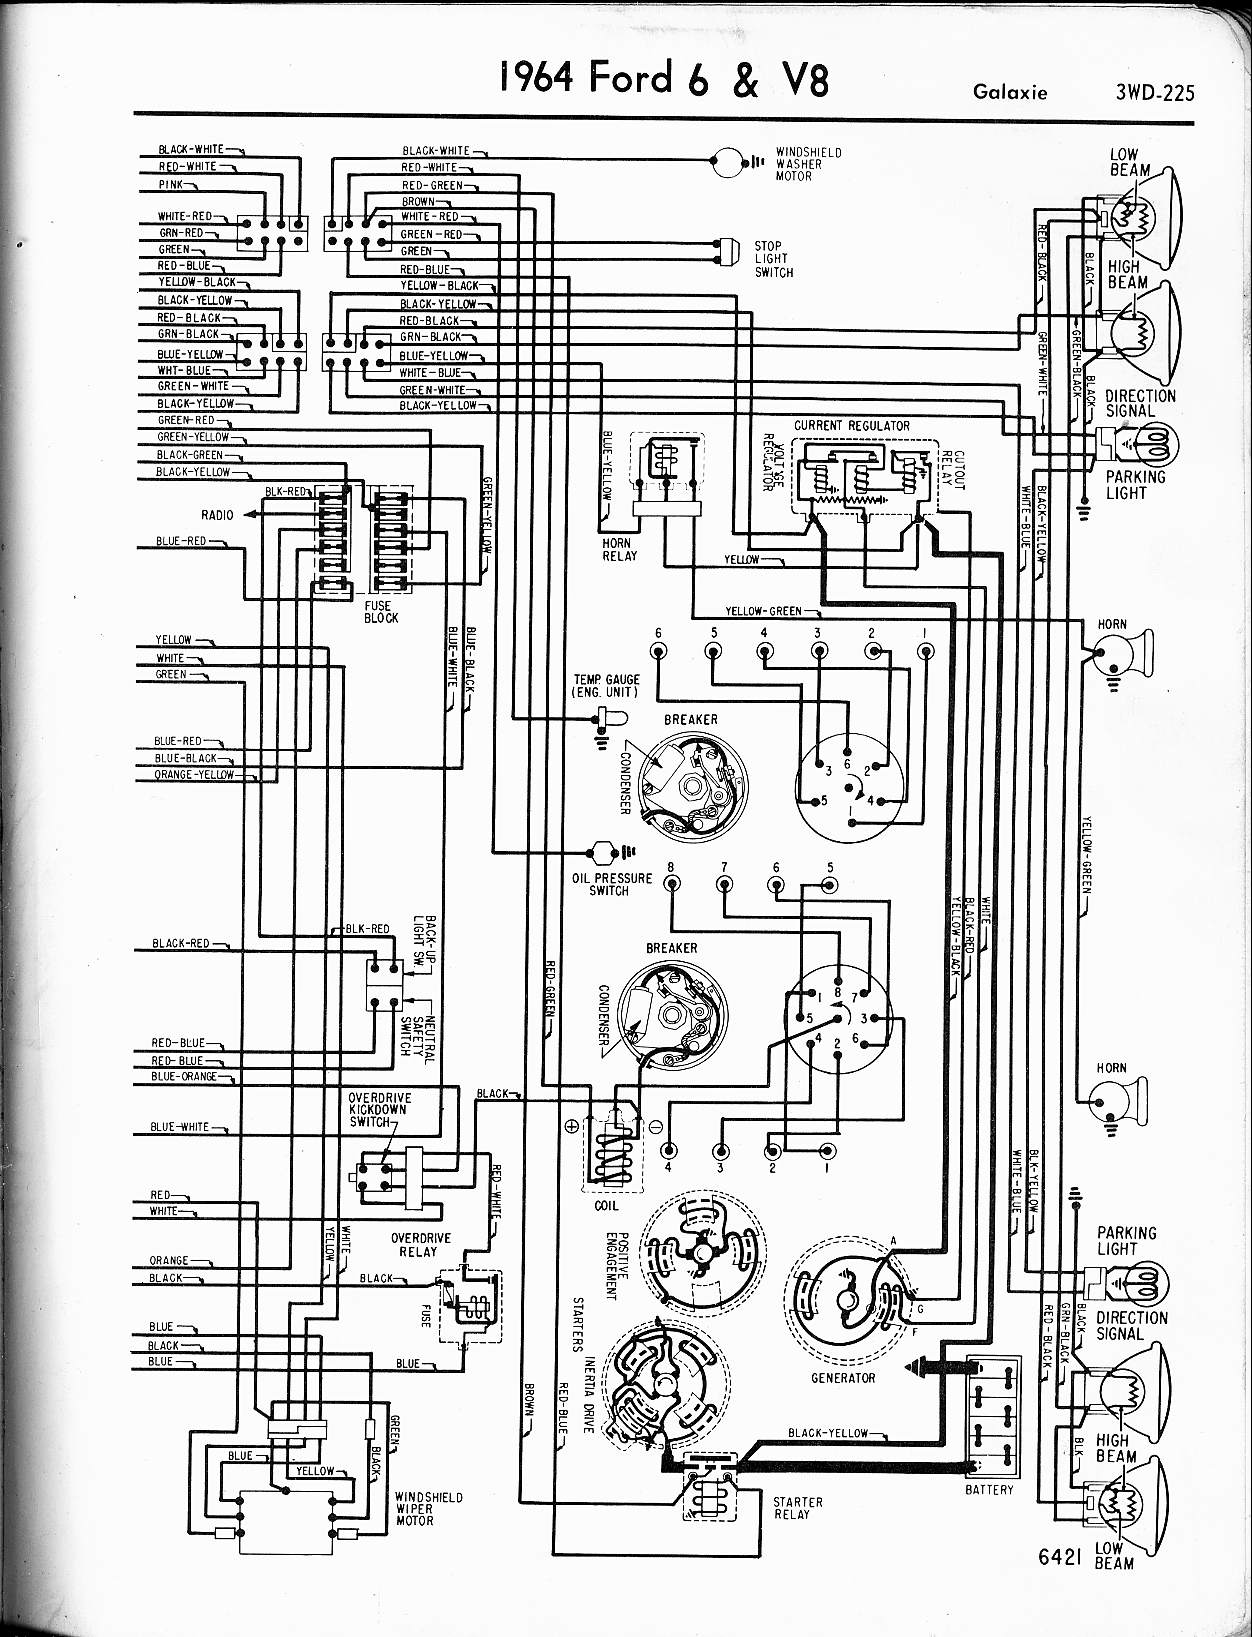 Need Electrical Help 64 Galaxie W Pulsing Power Draw on 1963 Ford Fairlane Wiring Diagram